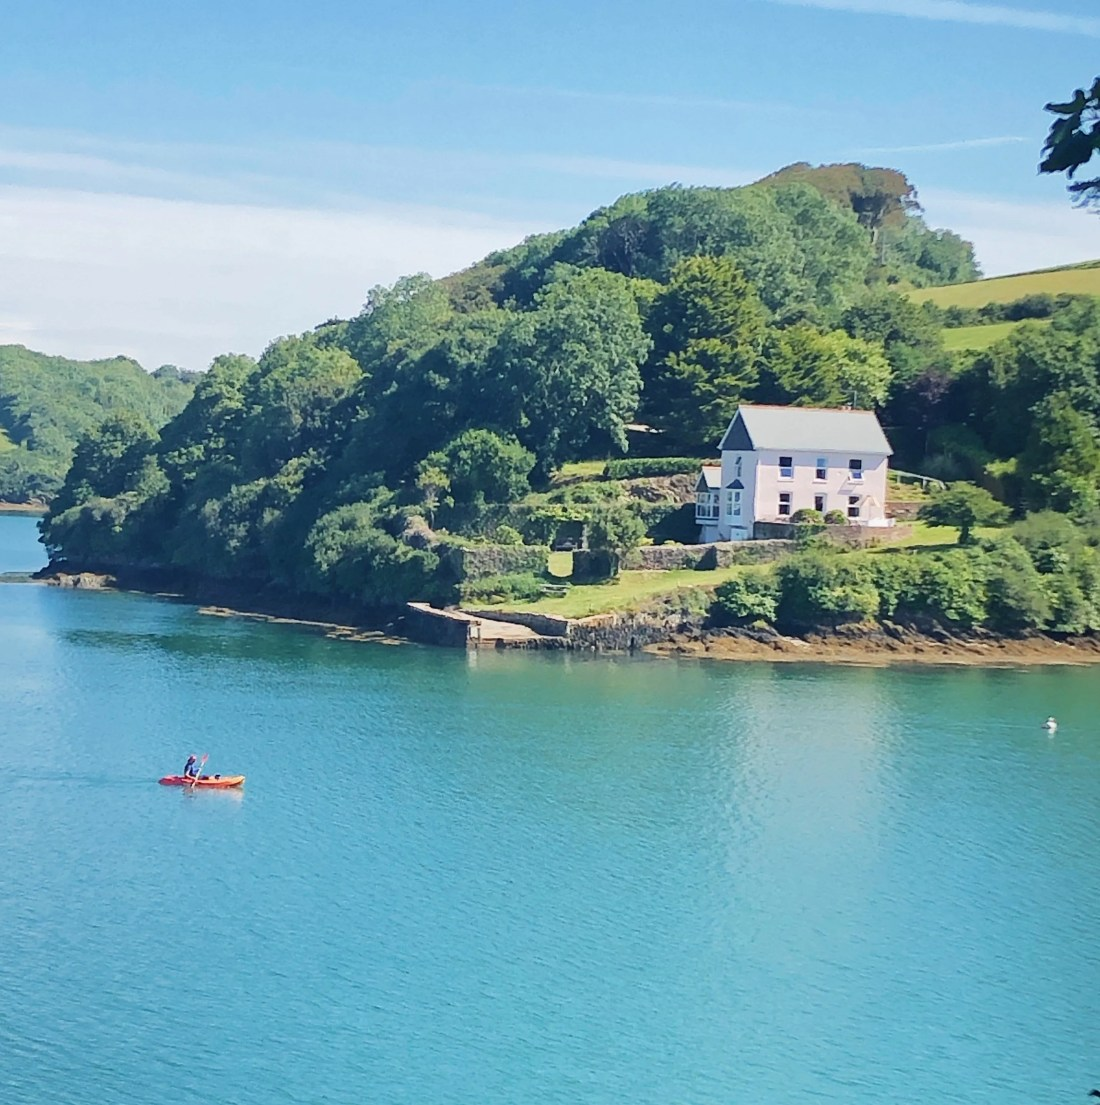 A house on the River Fal